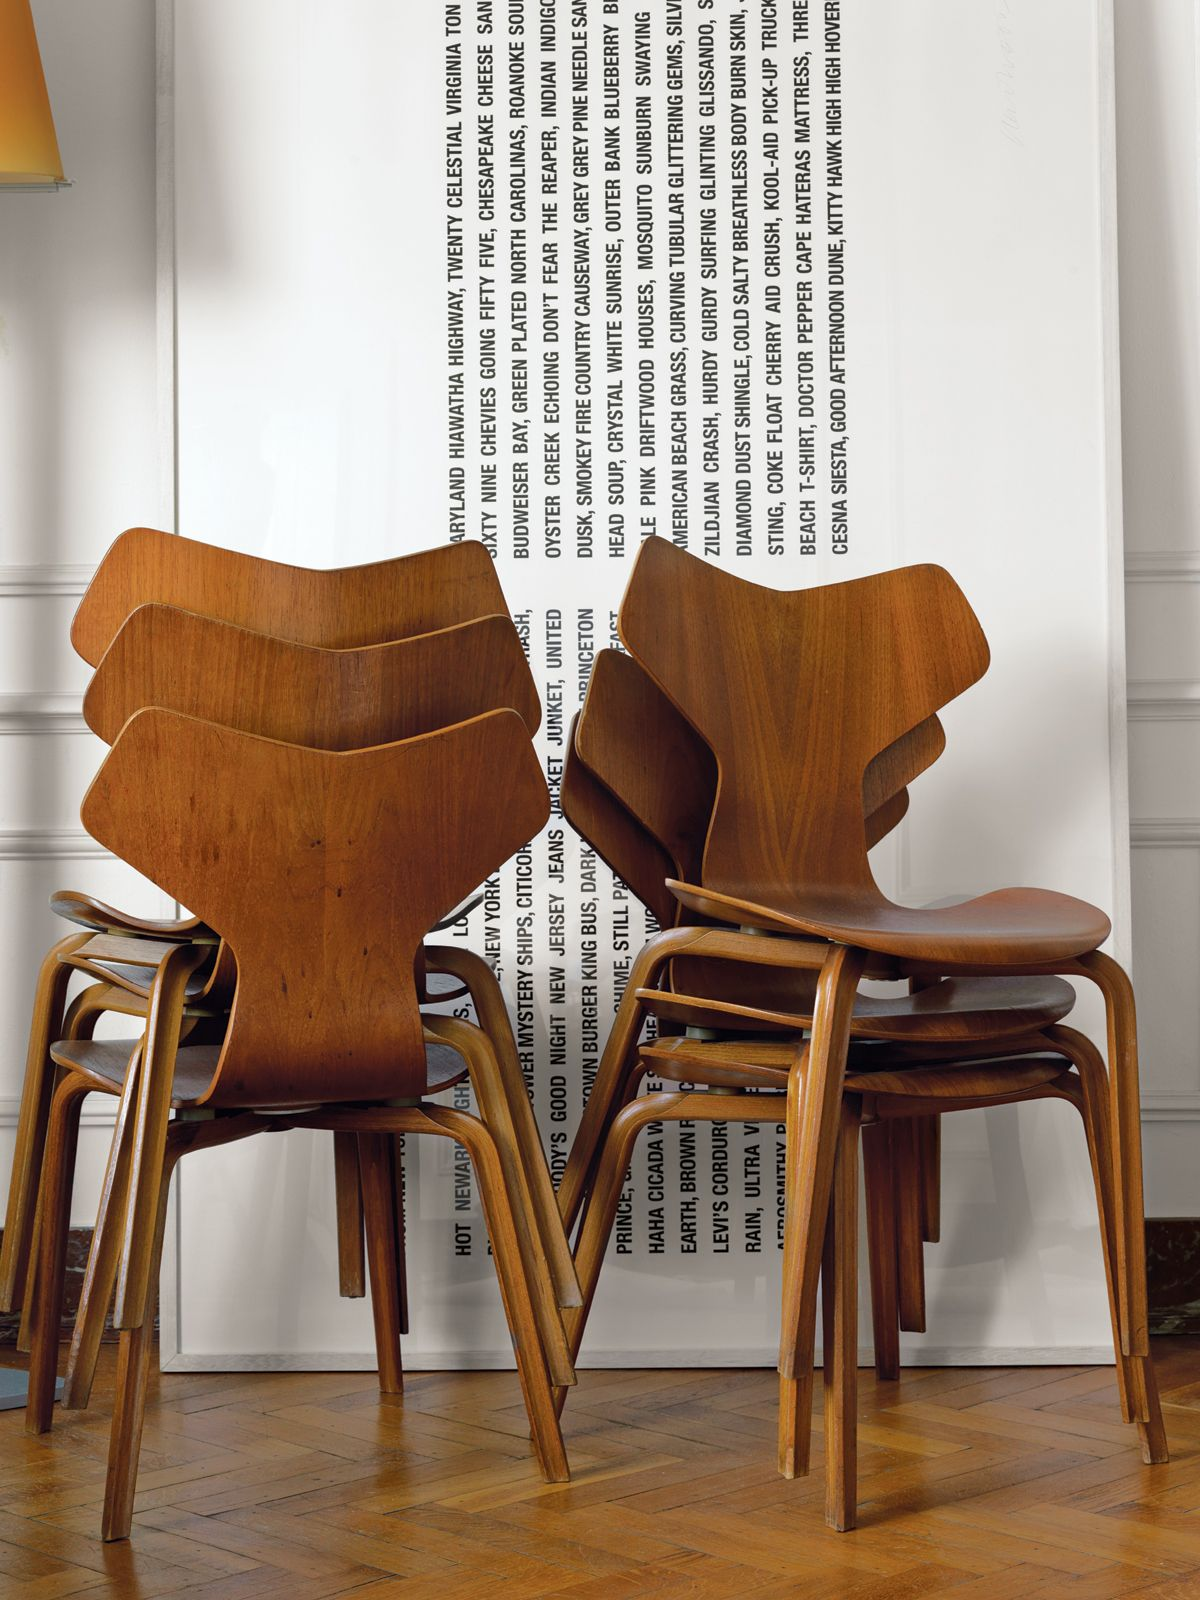 a stack of 1955 grand prix chairs by arne jacobsen rests besides a